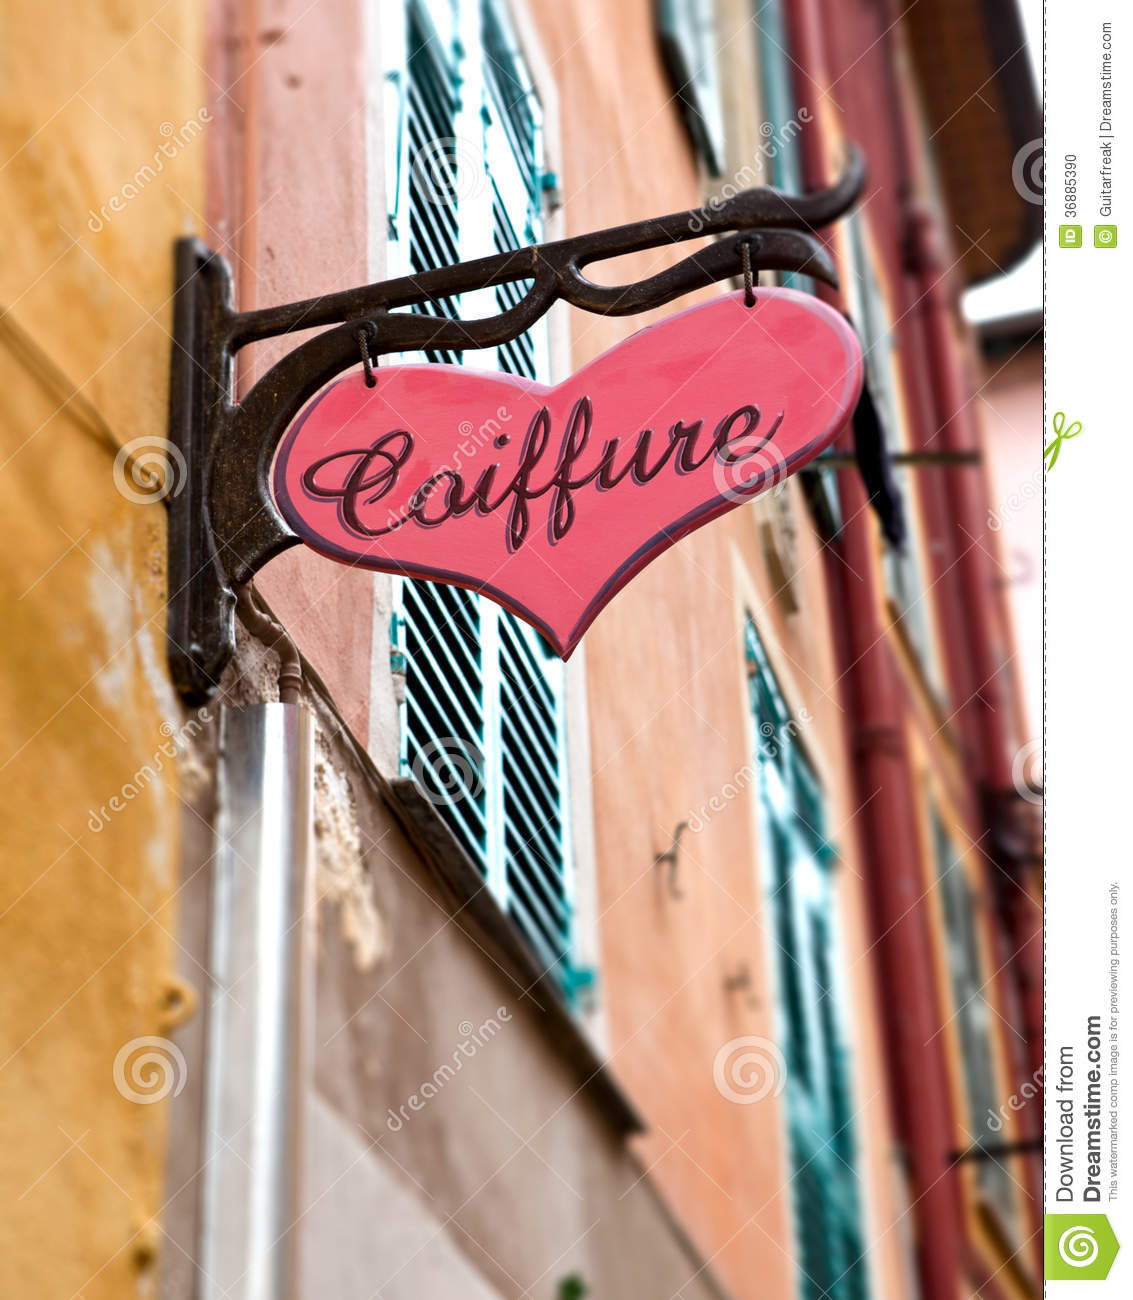 French Hair Salon Sign Stock Photo Image Of Coiffure 36885390